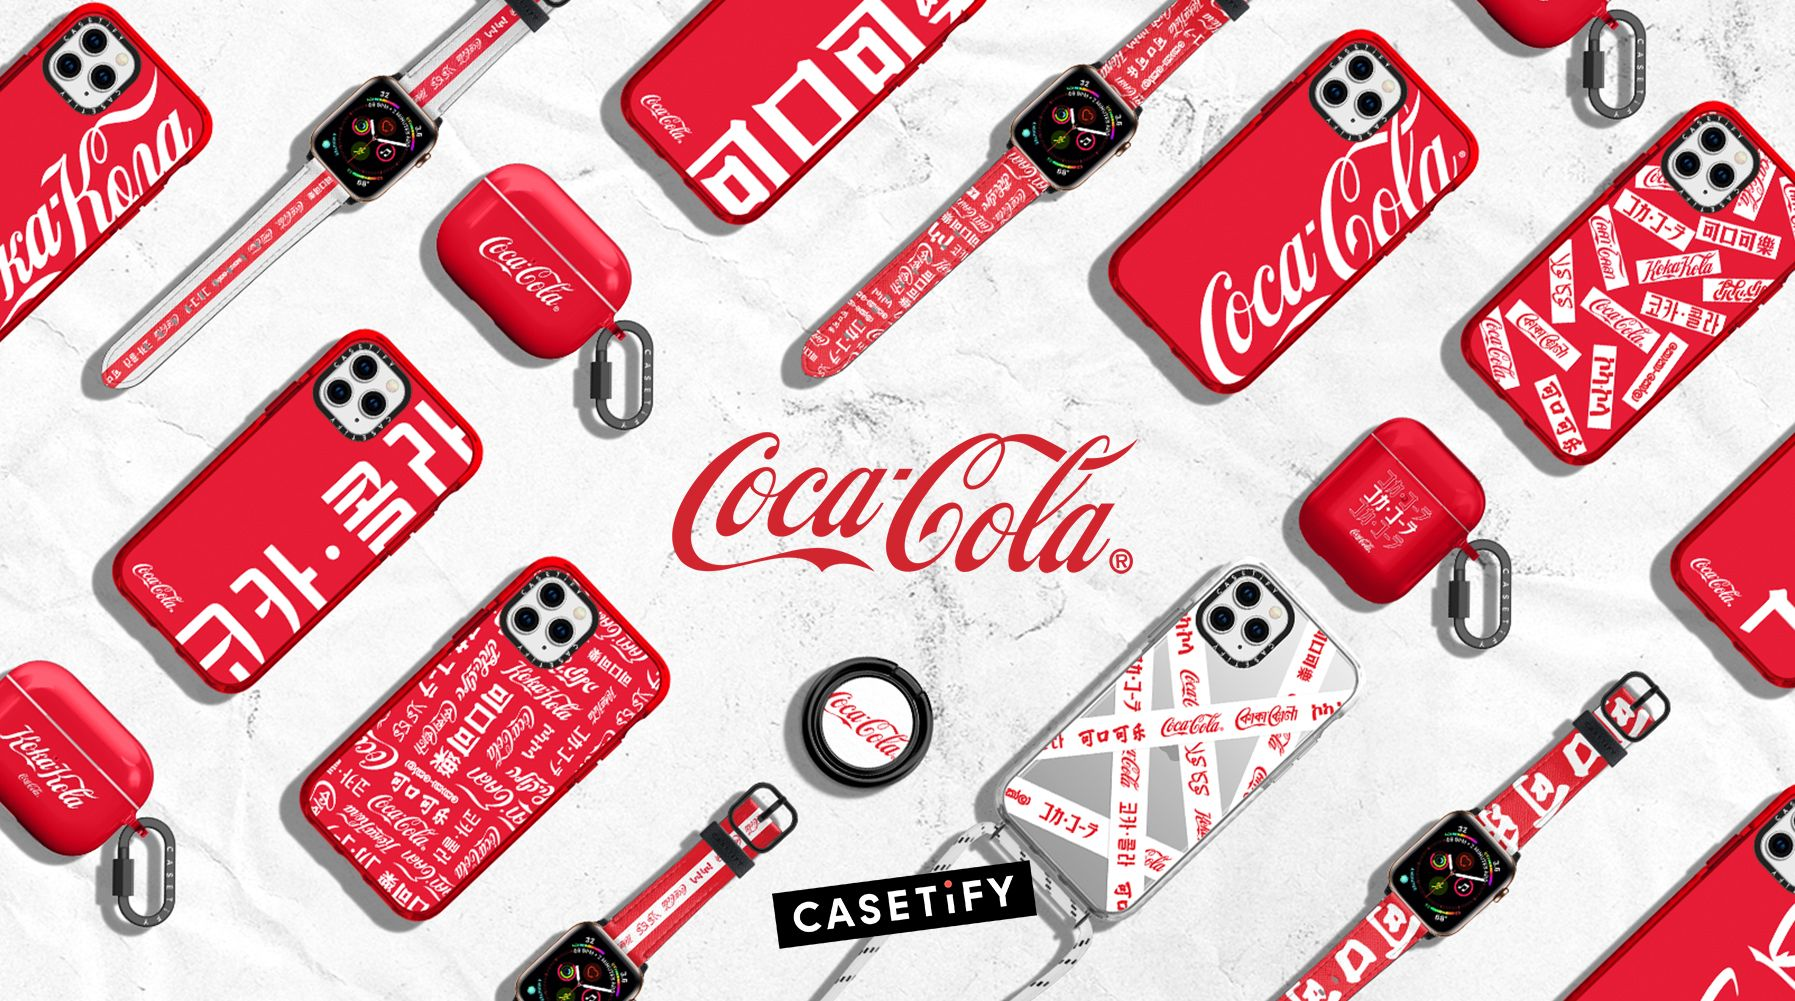 Casetify-x-Coca-Cola-hero